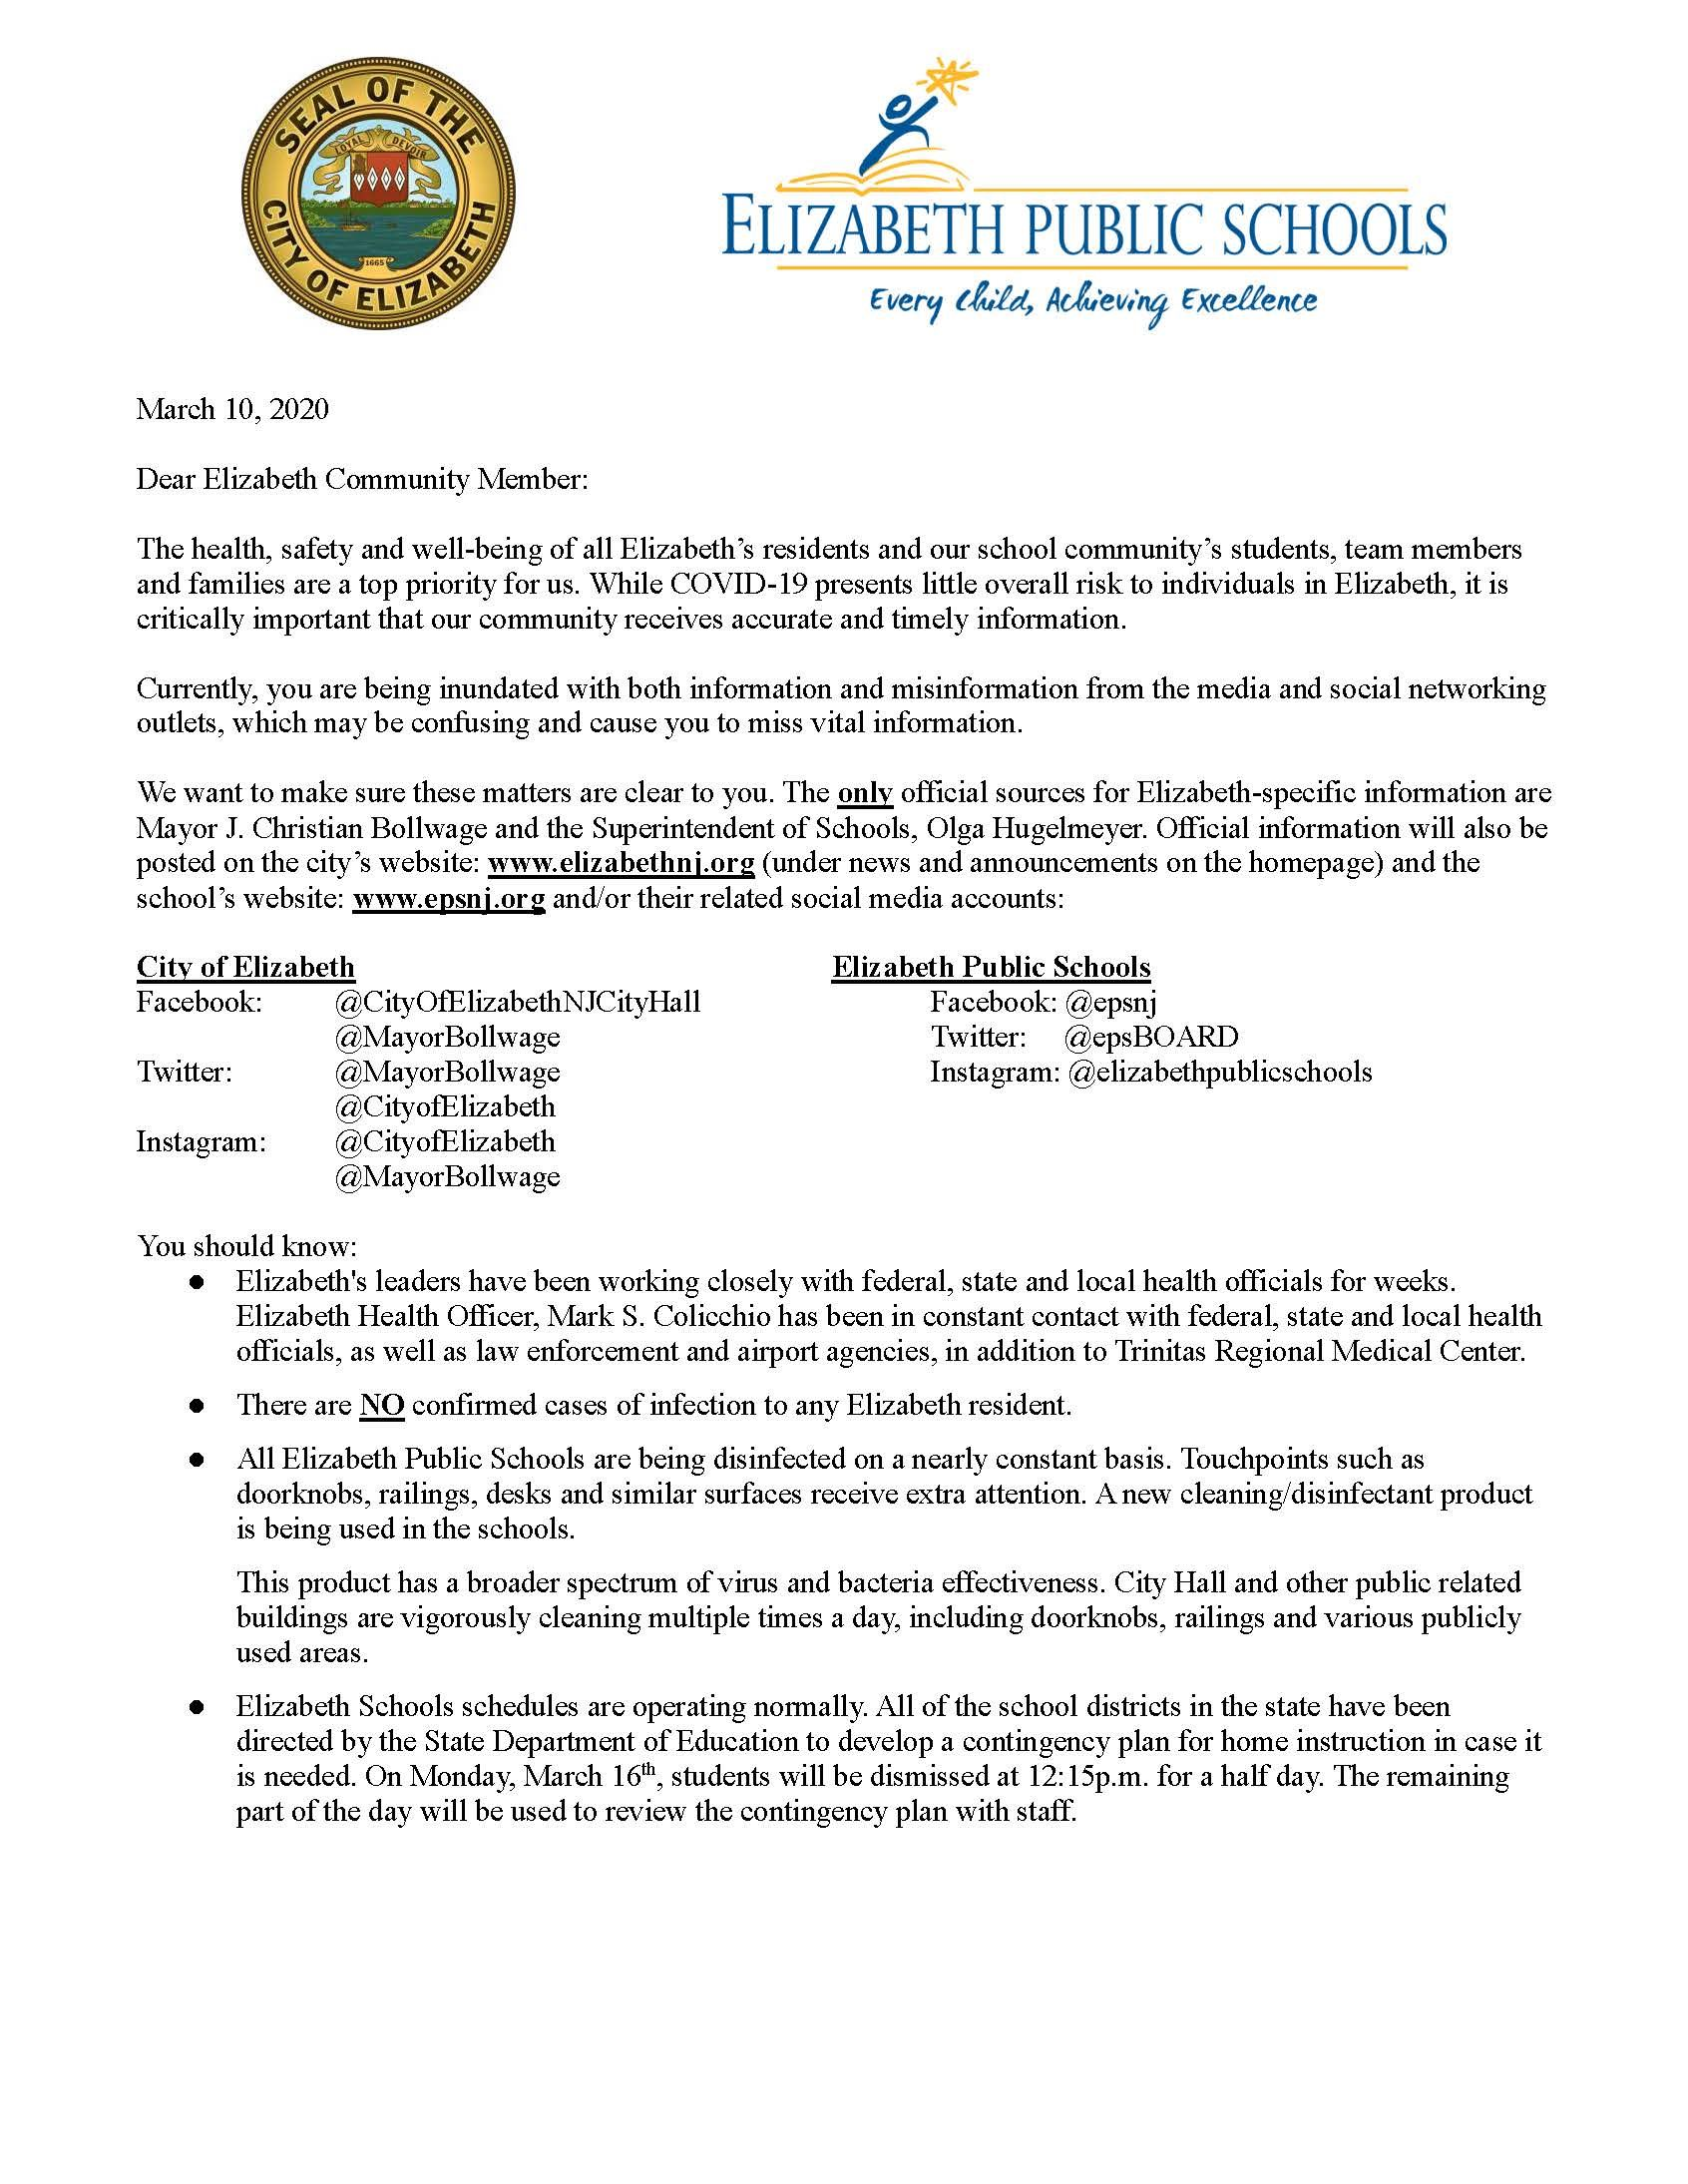 Coronavirus Letter from the Mayor and Superintendent 3-10-20